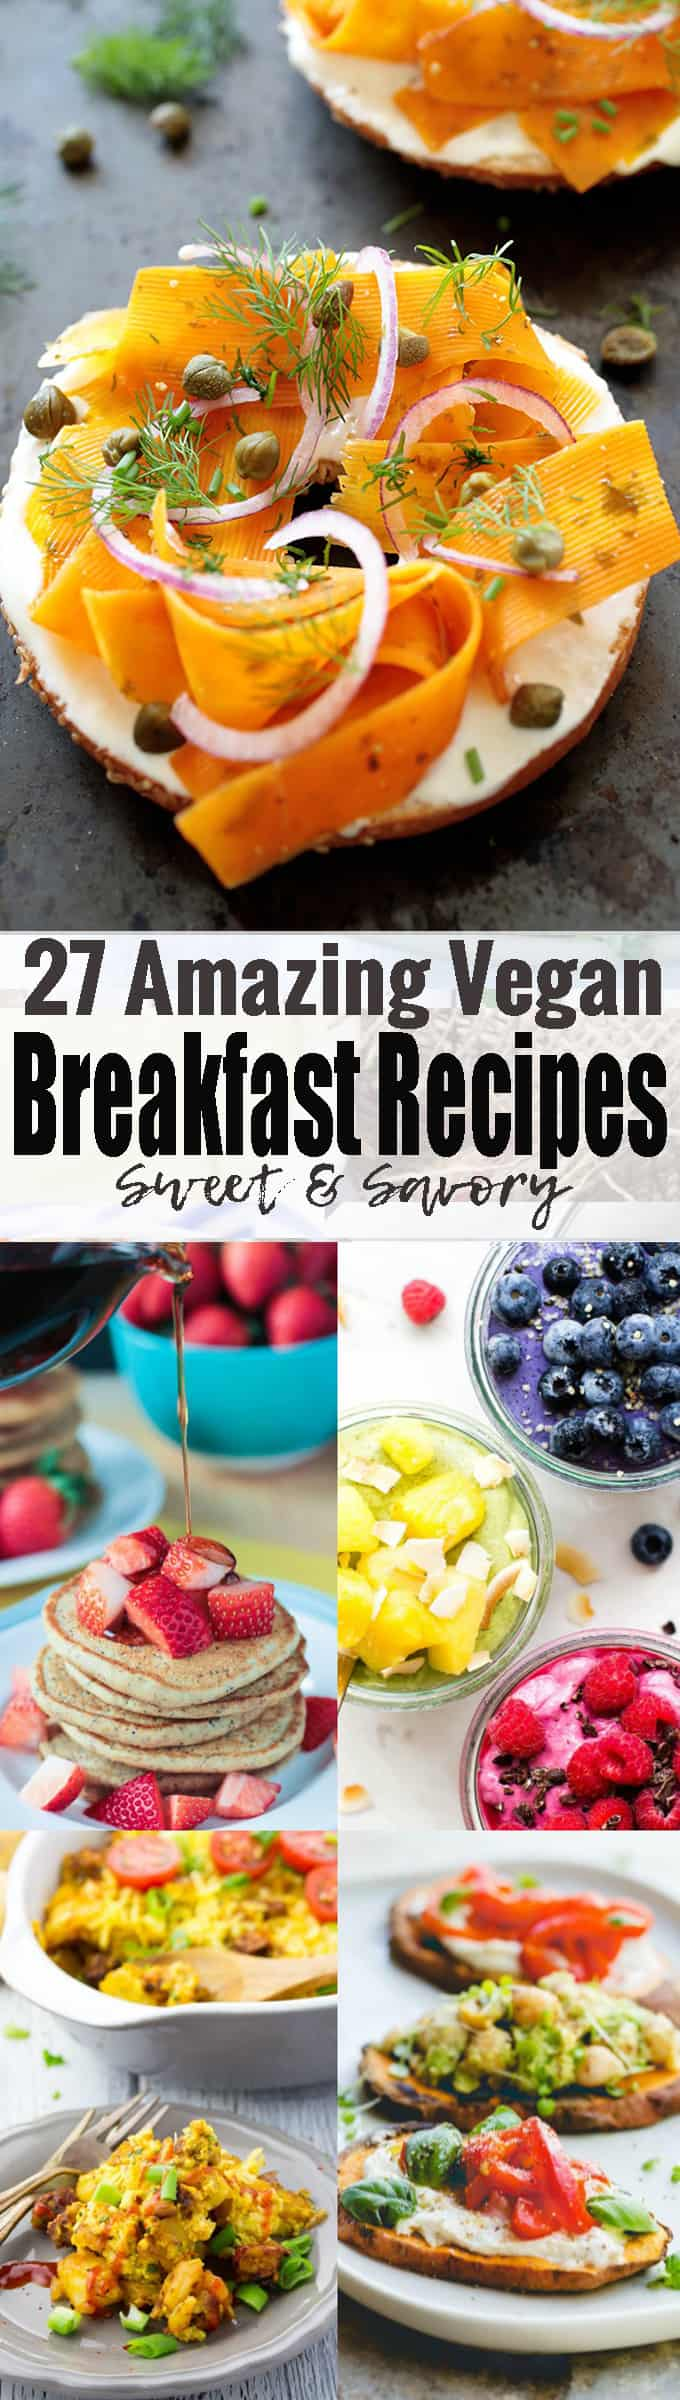 A good breakfast can set the tone for your whole day. So start the day off right with one of these amazing sweet and savory vegan breakfast recipes! <3